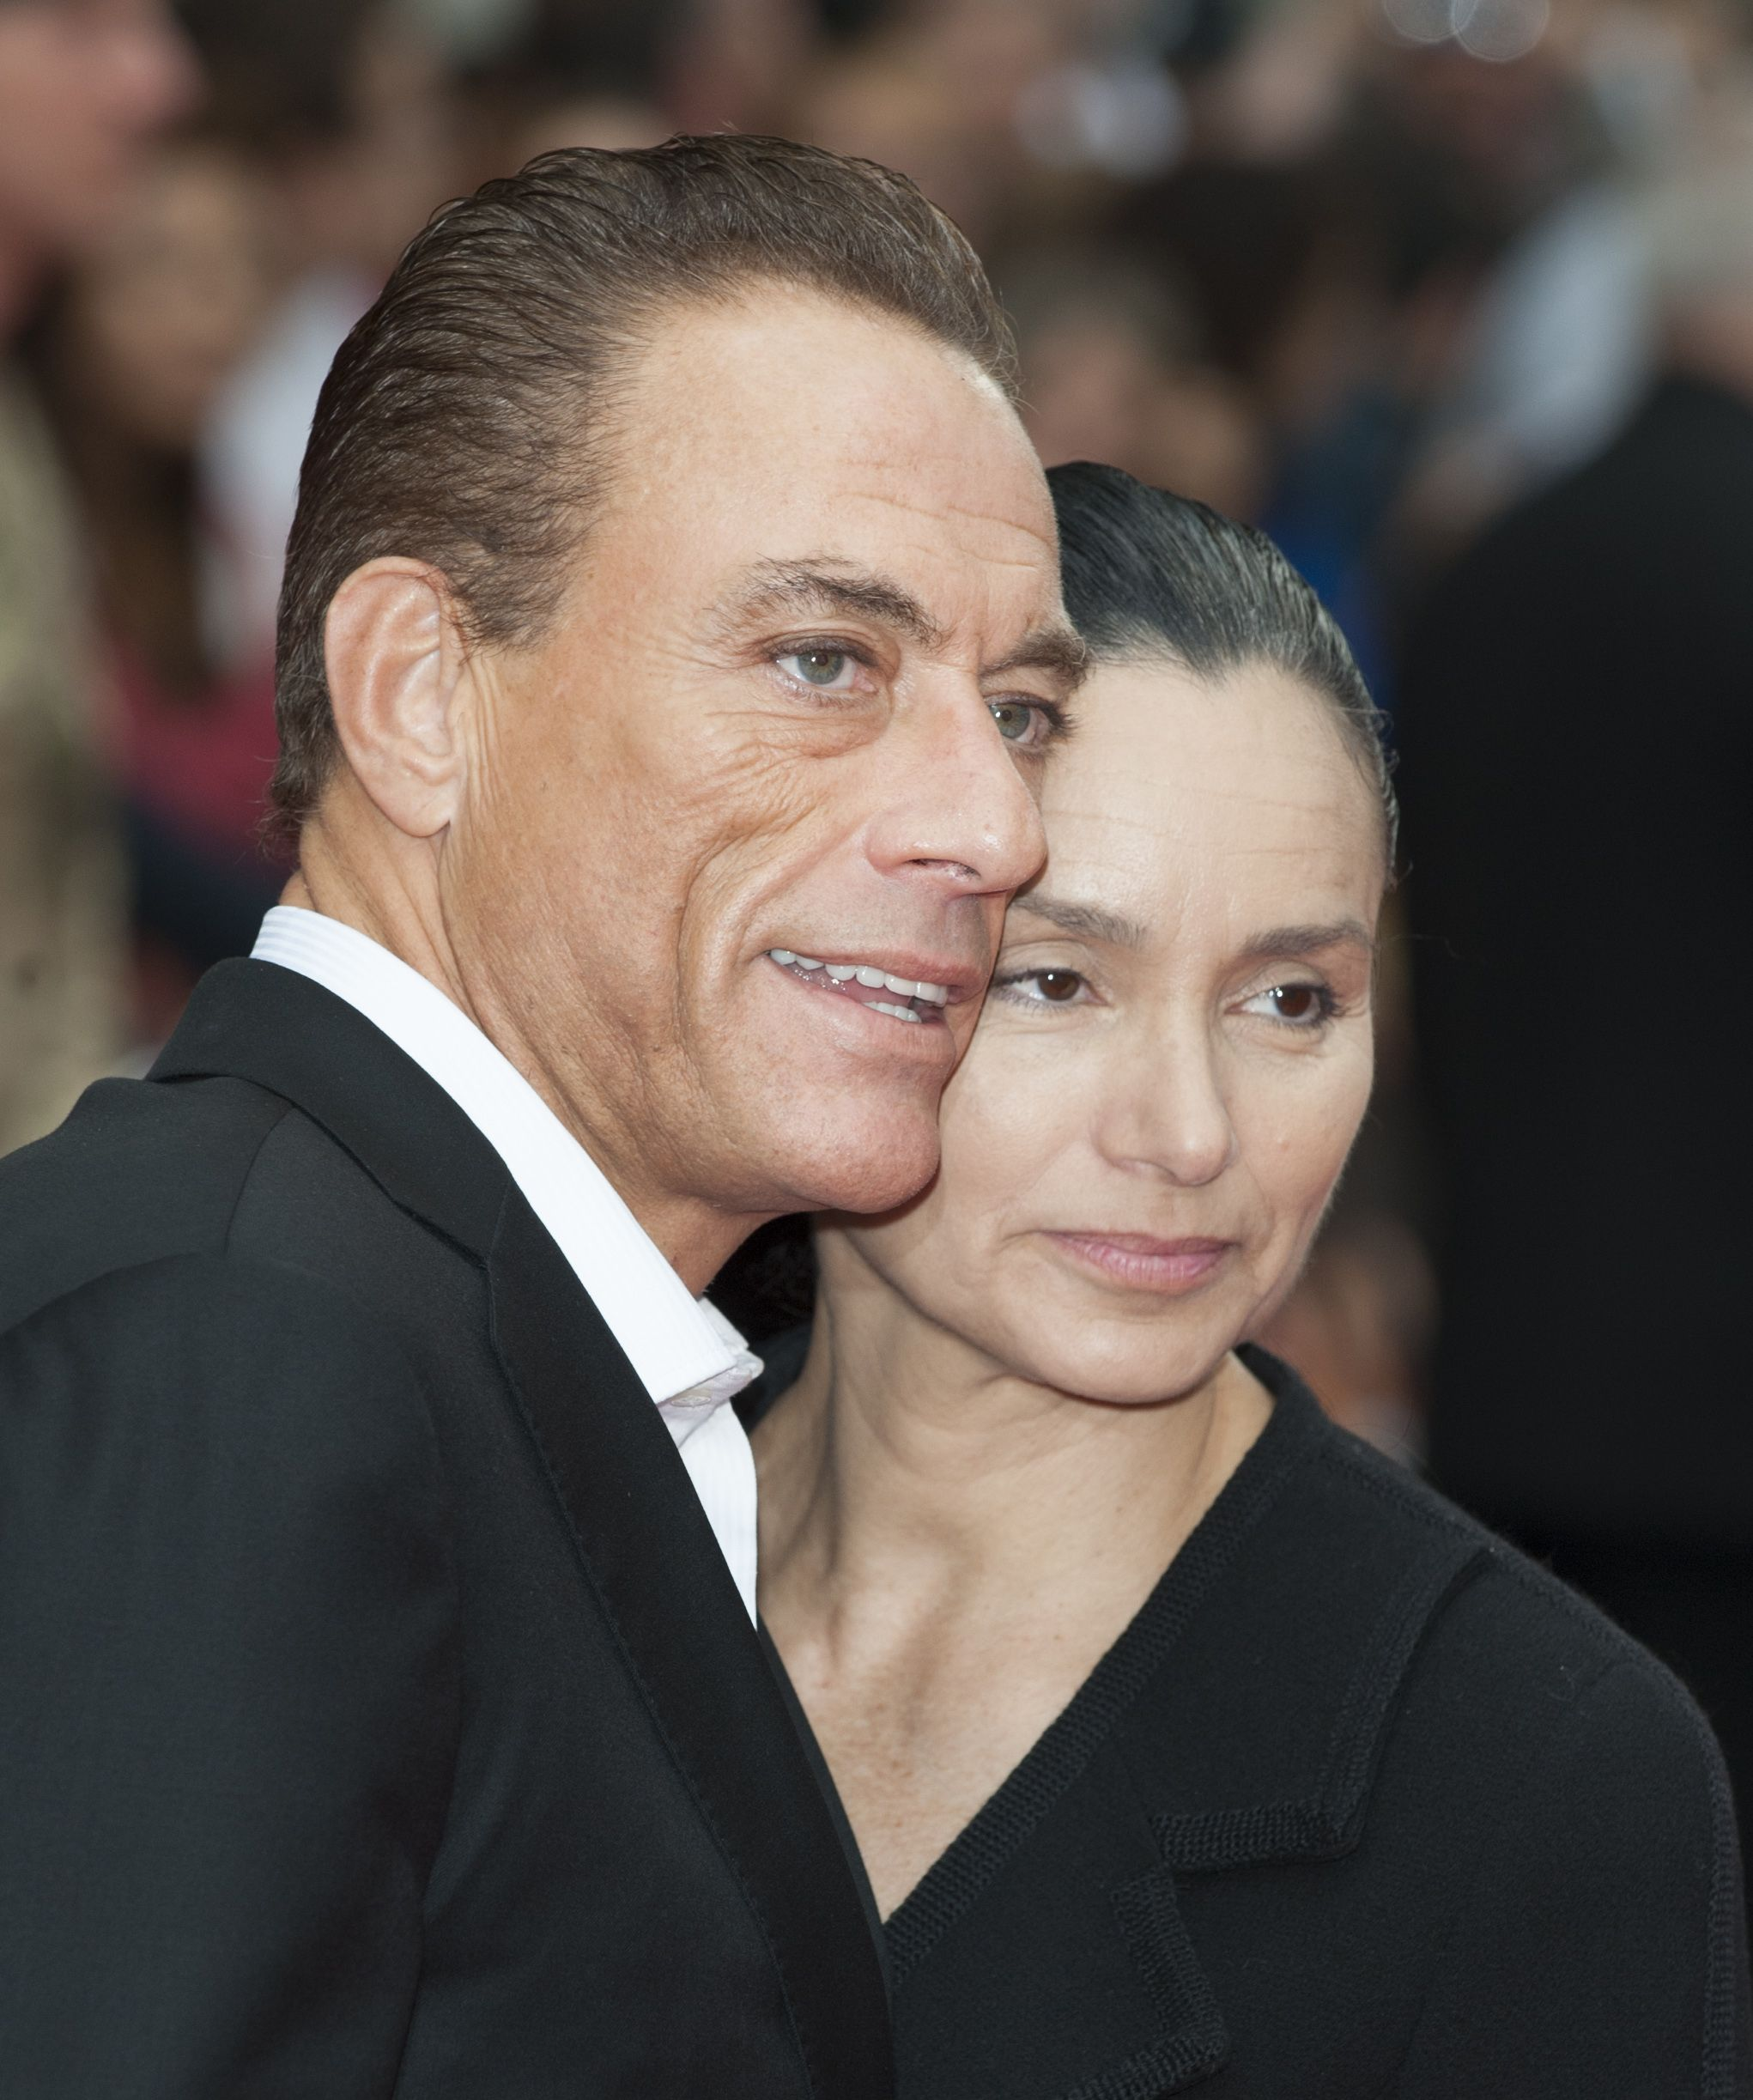 """Jean-Claude Van Damme and Gladys Portugues at the Uk Premiere of """"The Expendables 2""""  on August 10, 2012, at Leicester Square, London   Photo: Mark Cuthbert/UK Press/Getty Images"""